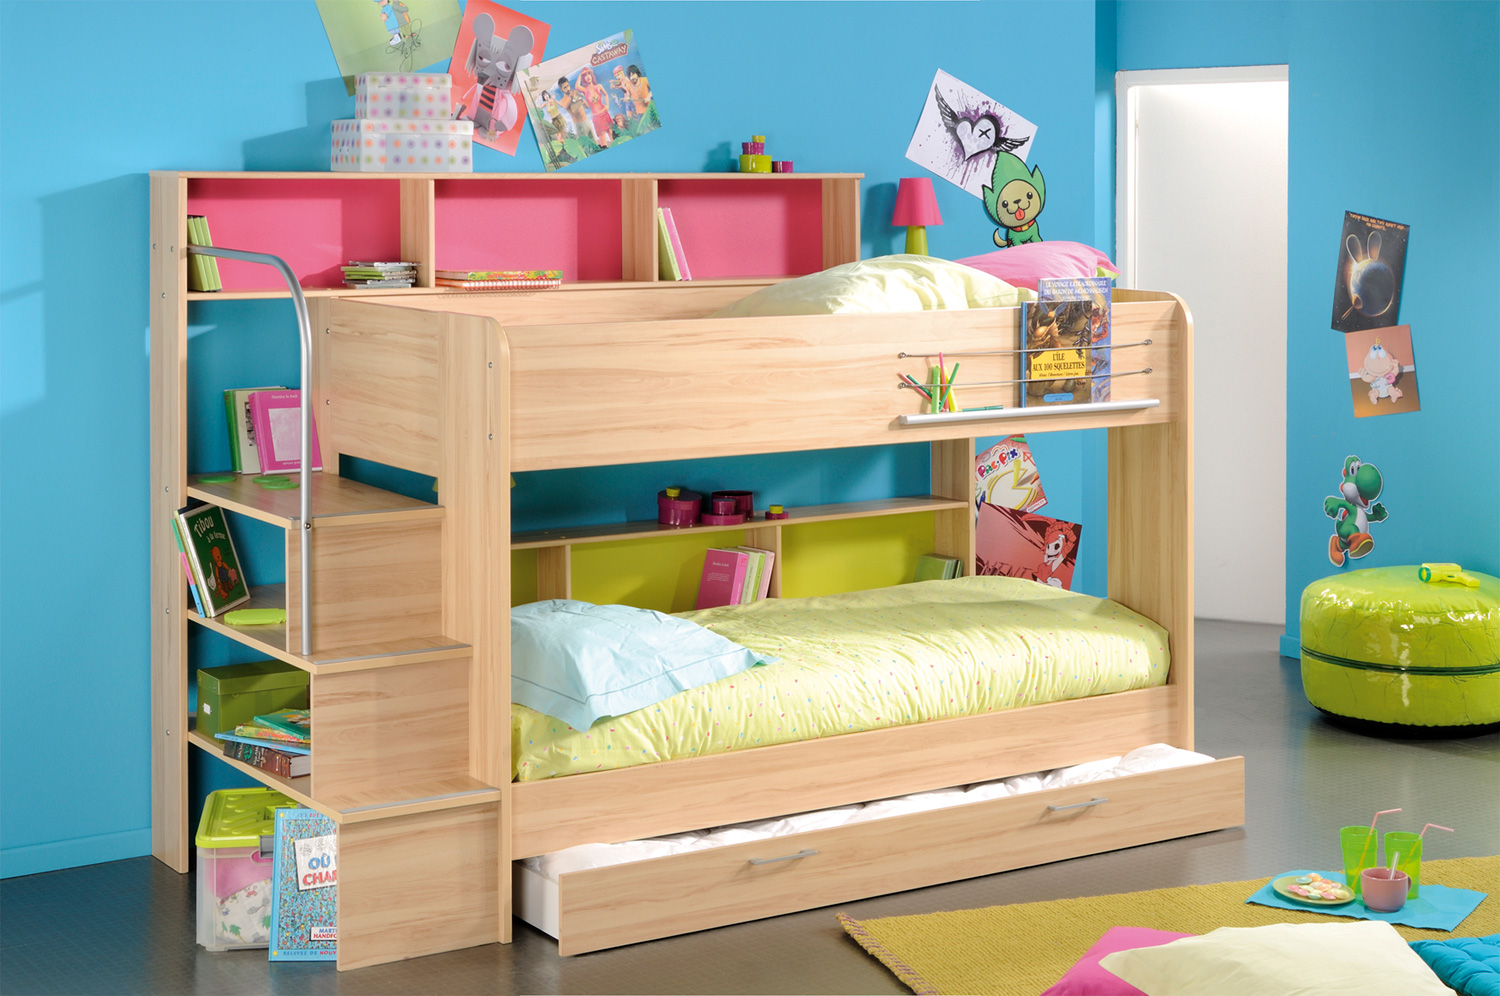 Space saving stylish bunk beds for your home Bunk bed boys room